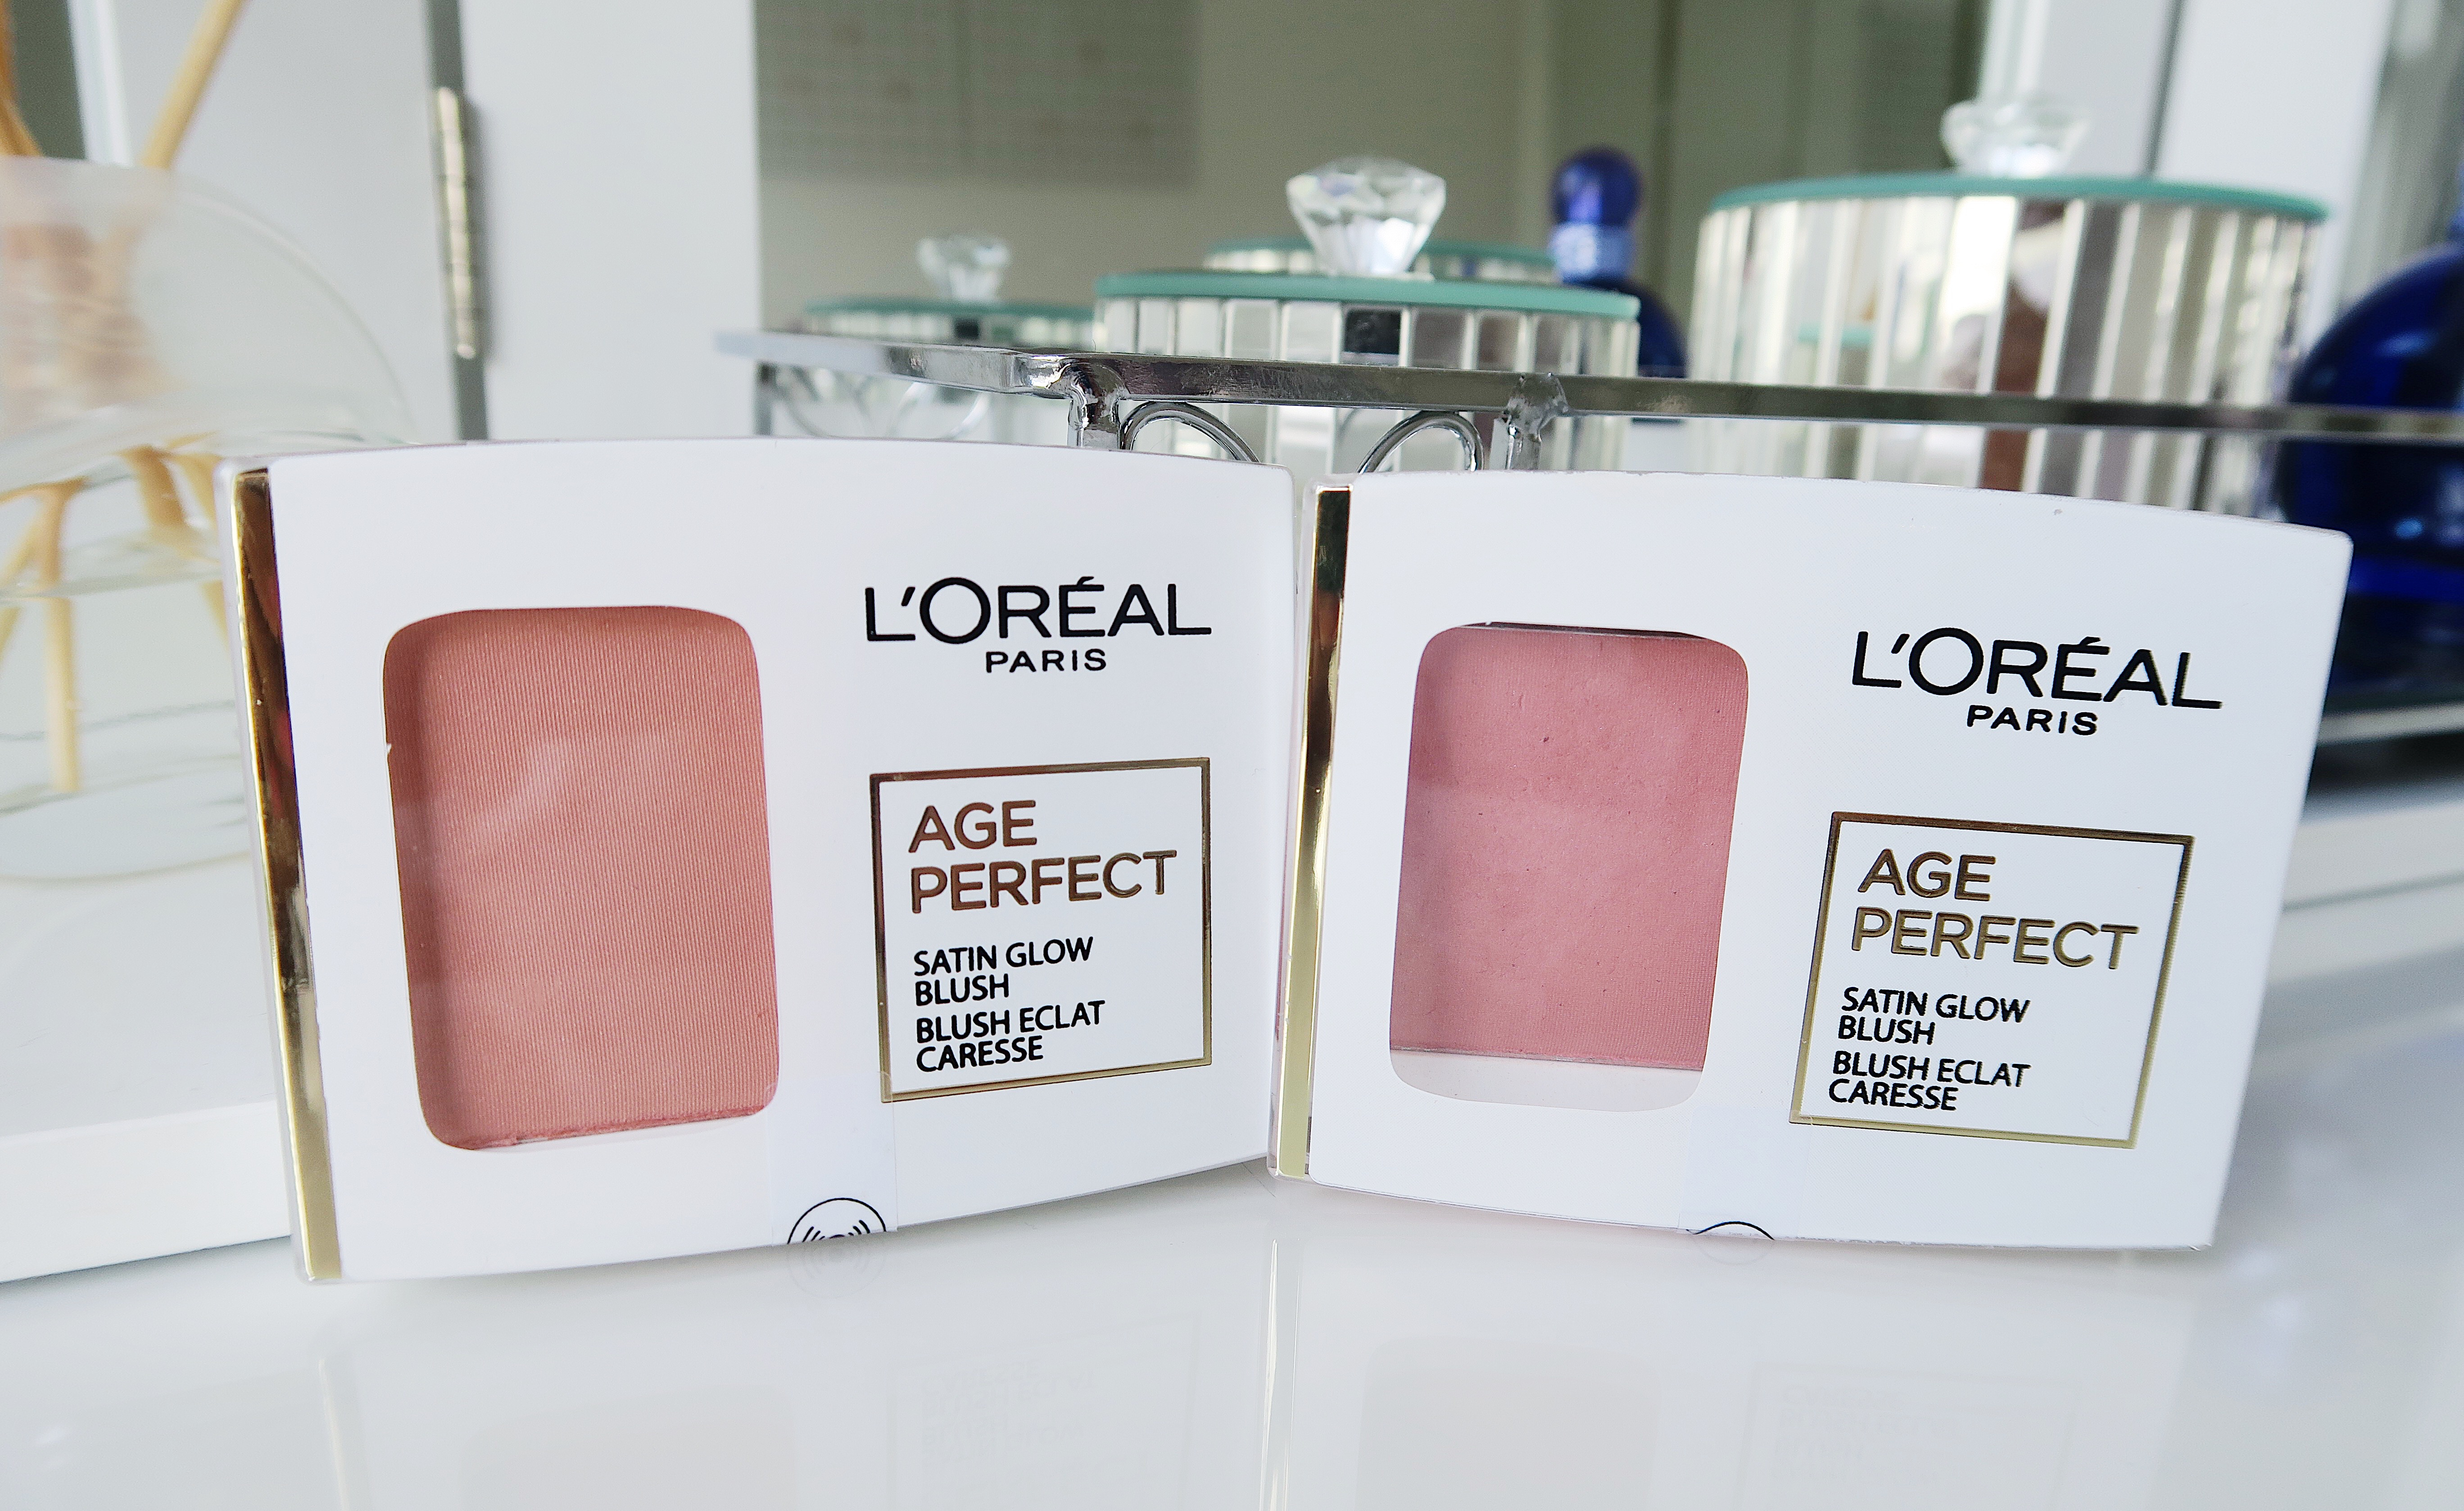 Age Perfect Anti-Feathering Lip Liner by L'Oreal #8